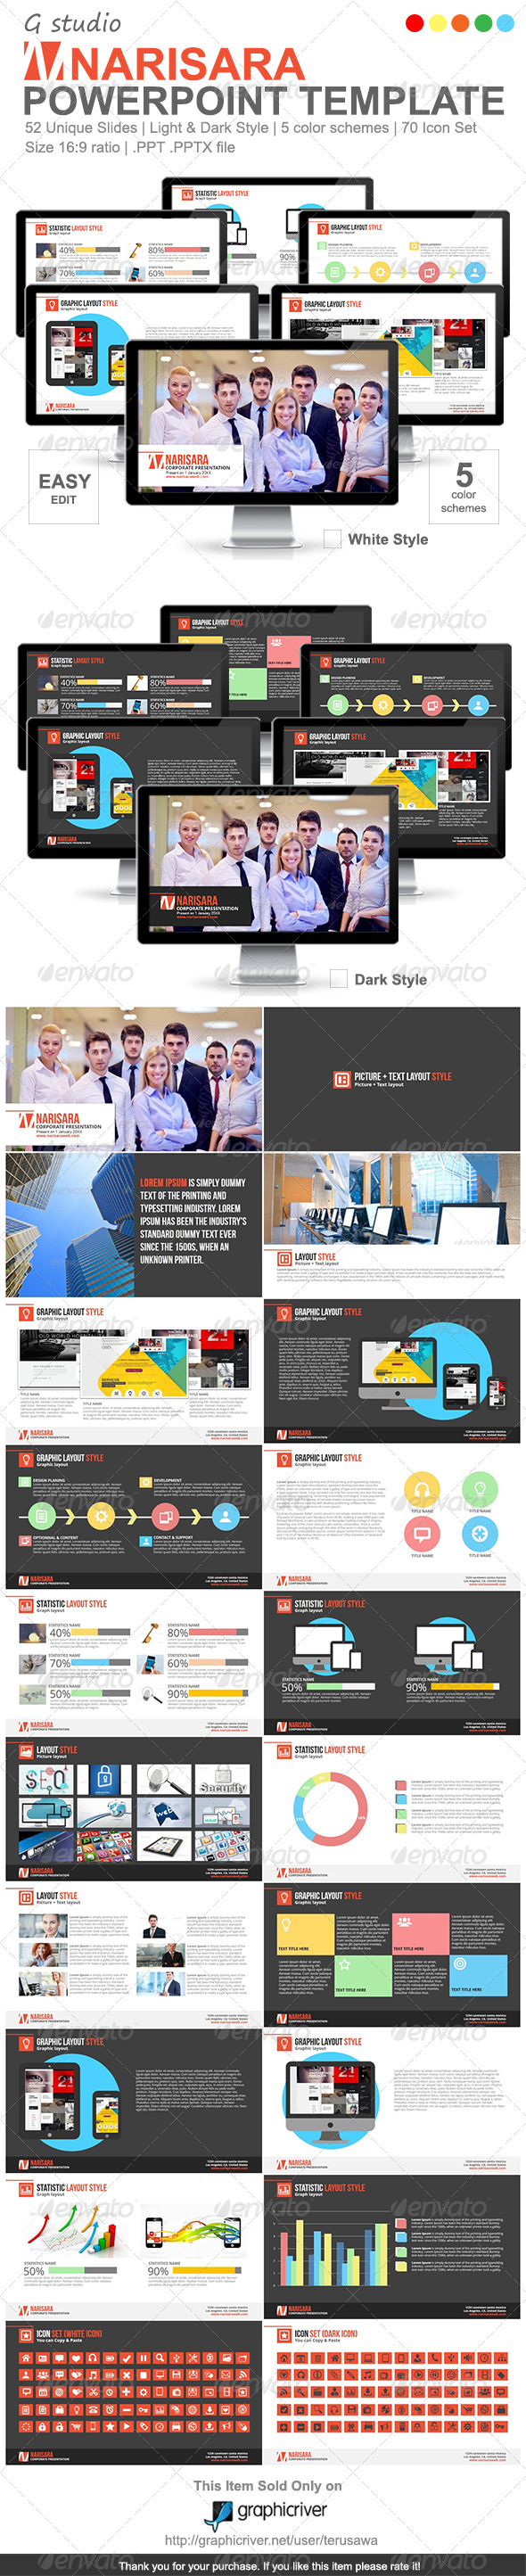 Gstudio Narisara Powerpoint Template - Business Powerpoint Templates